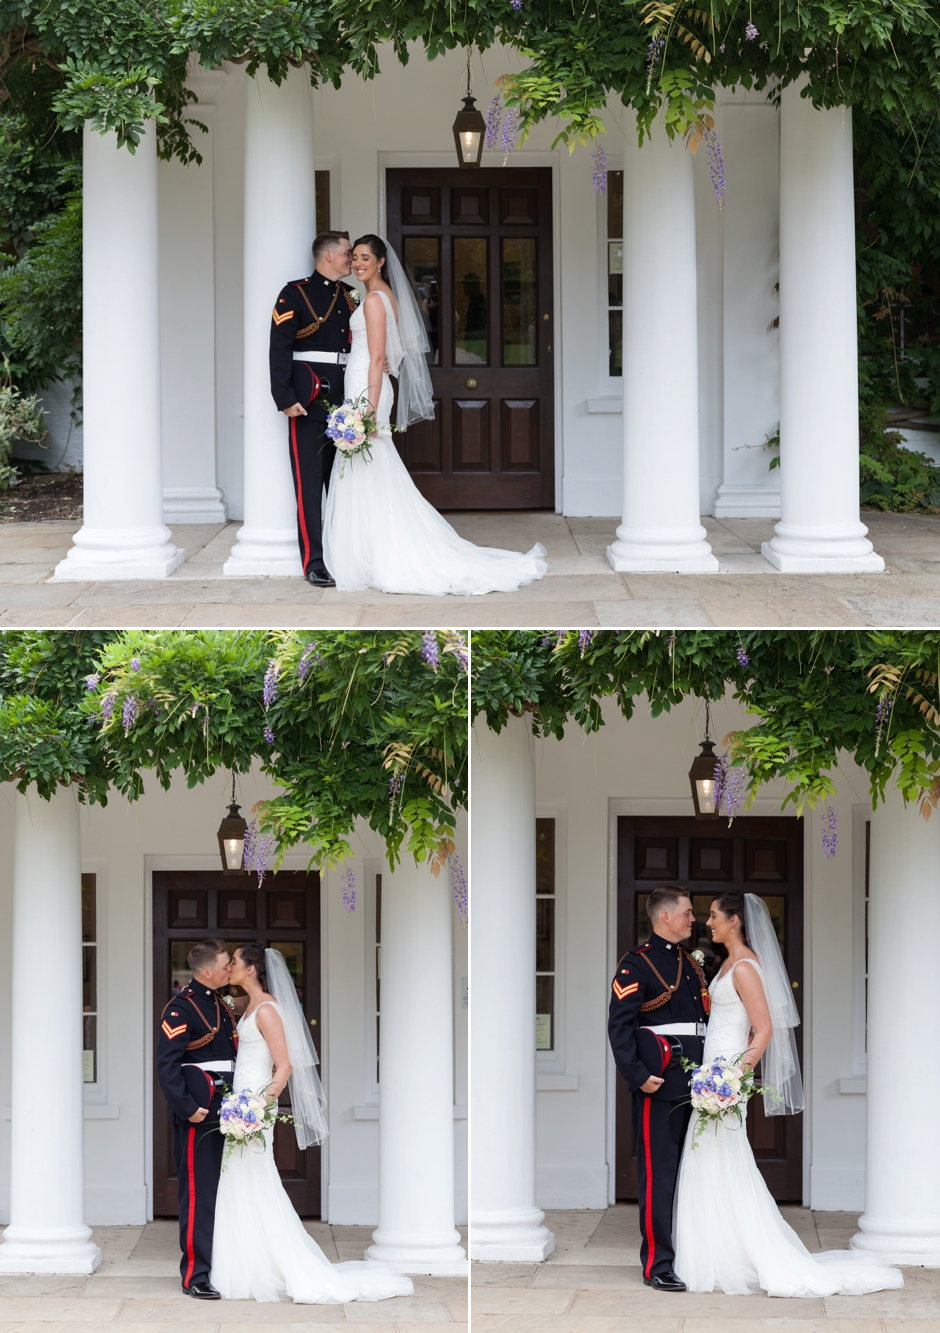 35-pembroke-lodge-richmond-park-london-wedding-photography-bride-and-groom